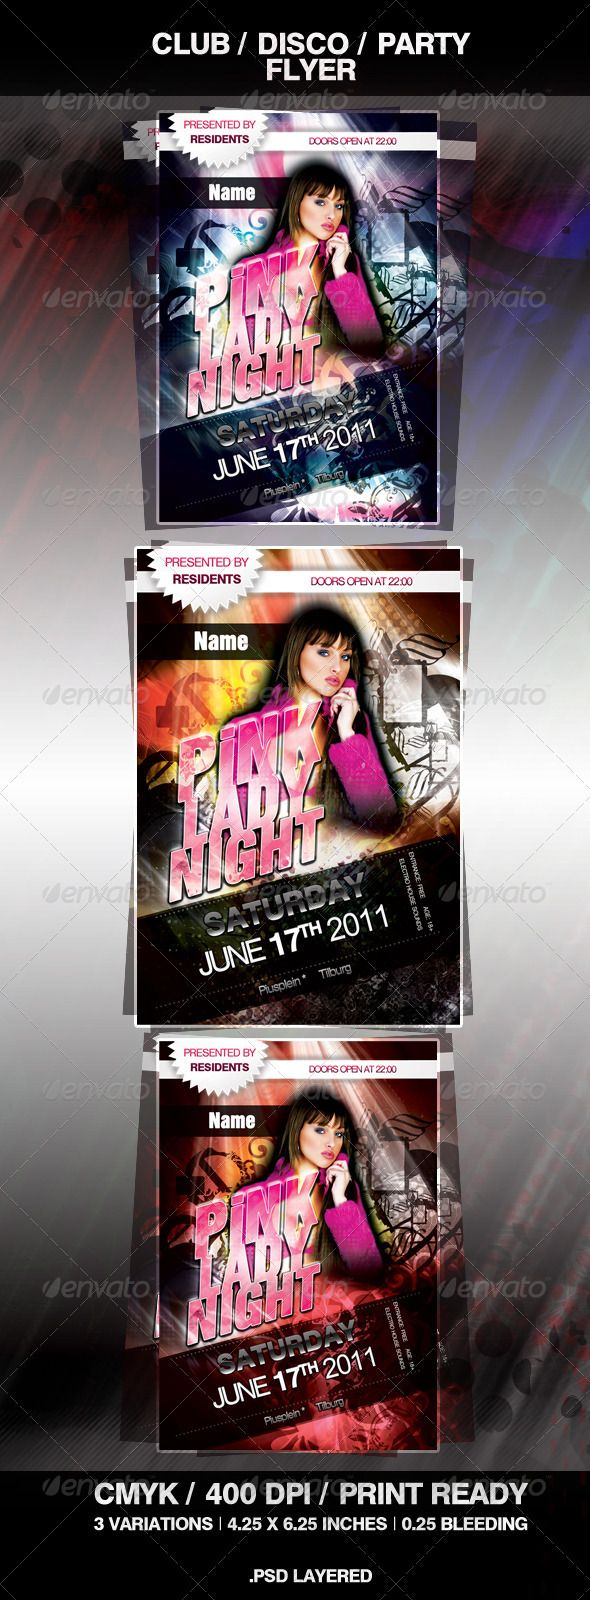 Disco Club Party Flyer  #GraphicRiver         Fresh and unique flyer that could be used as promotional material for a party, club, or event. The package includes a fully layered, renamed, grouped PSD file.  	 –  3 .psd files –  Print Ready –  Postcard Format (4,0 × 6,0 inch + bleed (4,25×6,25 inch)) –  400 dpi –   CMYK –  EasyPhoto Replacement –  3 Variations –  Well Organized Layers –  Easy to Customize  	 Girl (not included!): shutterstock_2213033.  	 Fonts used: HelbaBlackDB, HelbaDB, HelbaInseratDB, HelbaMedDB (fonts101 ).  	 Easy to modify, simply change colors, dimensions (at resizing, quality image is the same).  	 Also it is simple to place a model at the location of the girl (premaded holder). Also it is easy to change the title!  	 Resolution: 400dpi CMYK color Include bleeds, trims and guidelines.  	 Good luck.     Created: 13June11 GraphicsFilesIncluded: PhotoshopPSD Layered: Yes MinimumAdobeCSVersion: CS3 PrintDimensions: 4.0×6.0 Tags: alternative #blocks #blue #classy #club #cold #dance #disco #electro #event #flower #funcky #hot #house #lady #night #orange #pink #rays #red #stylish #tropical